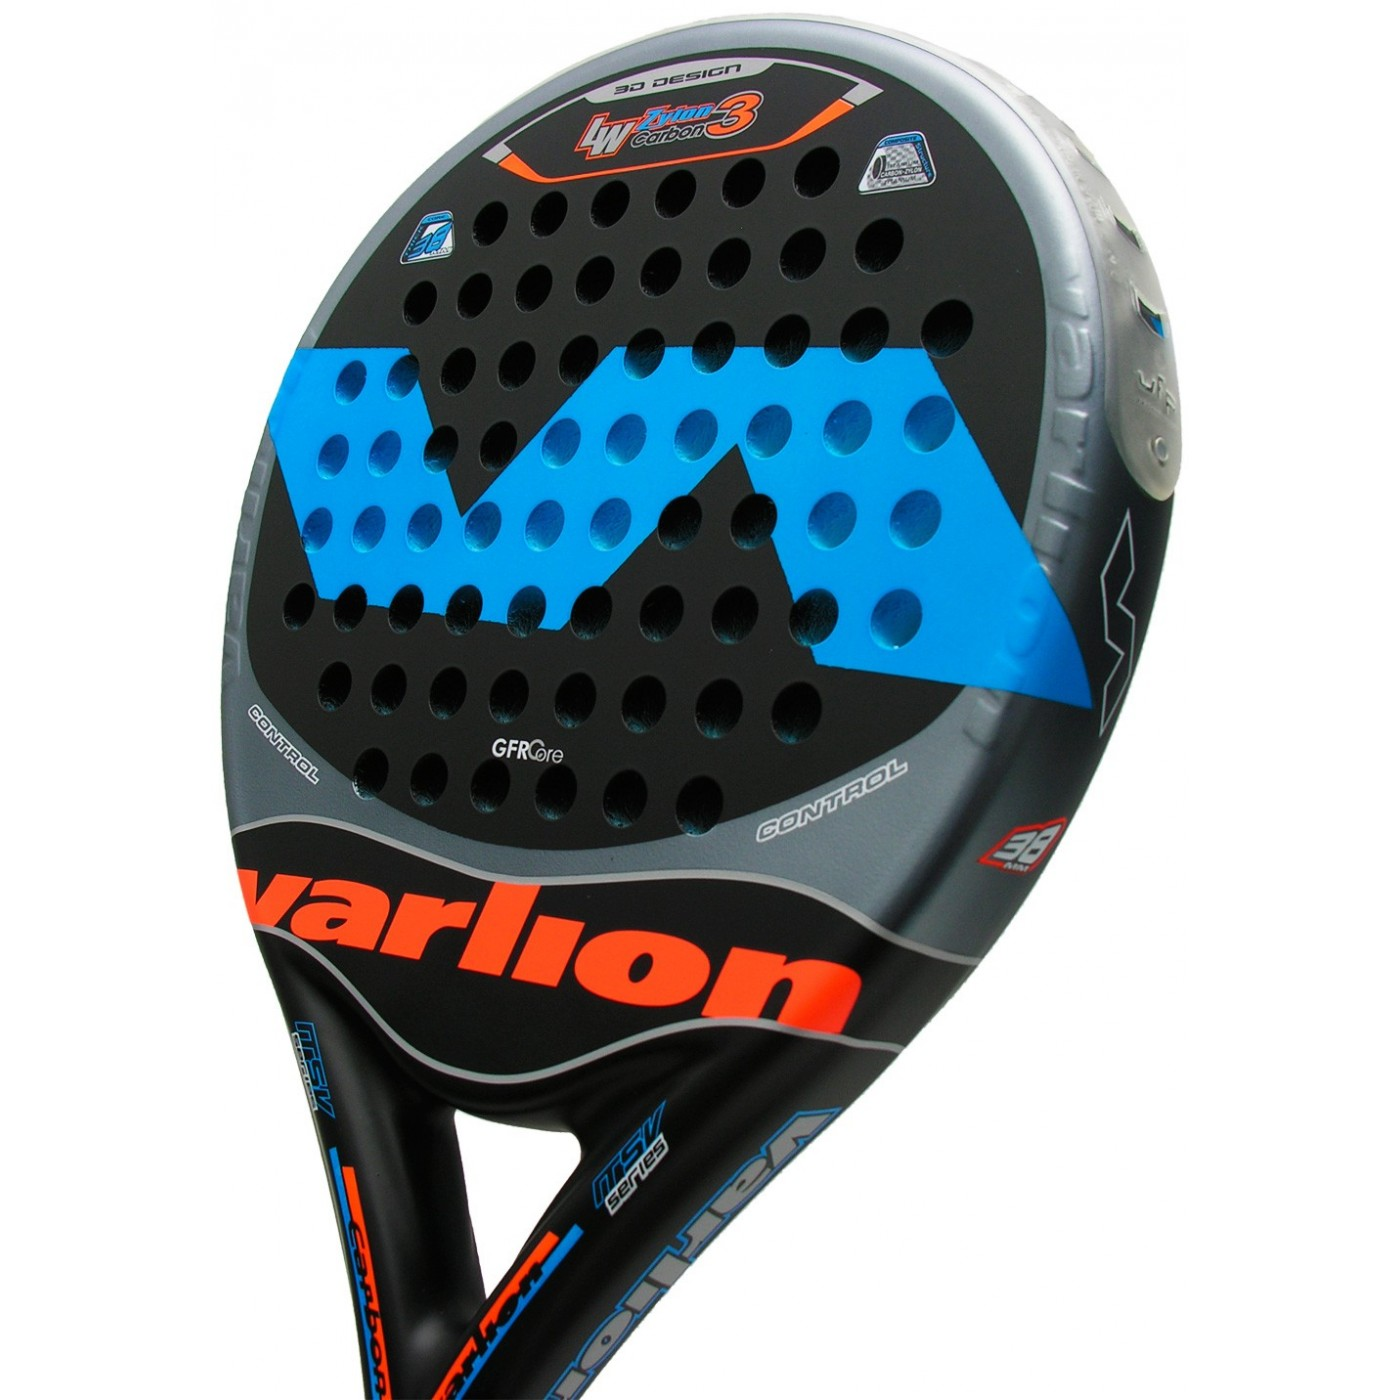 485734d80 Pala Varlion Lethal Weapon Carbon Zylon 3 LTD. Next